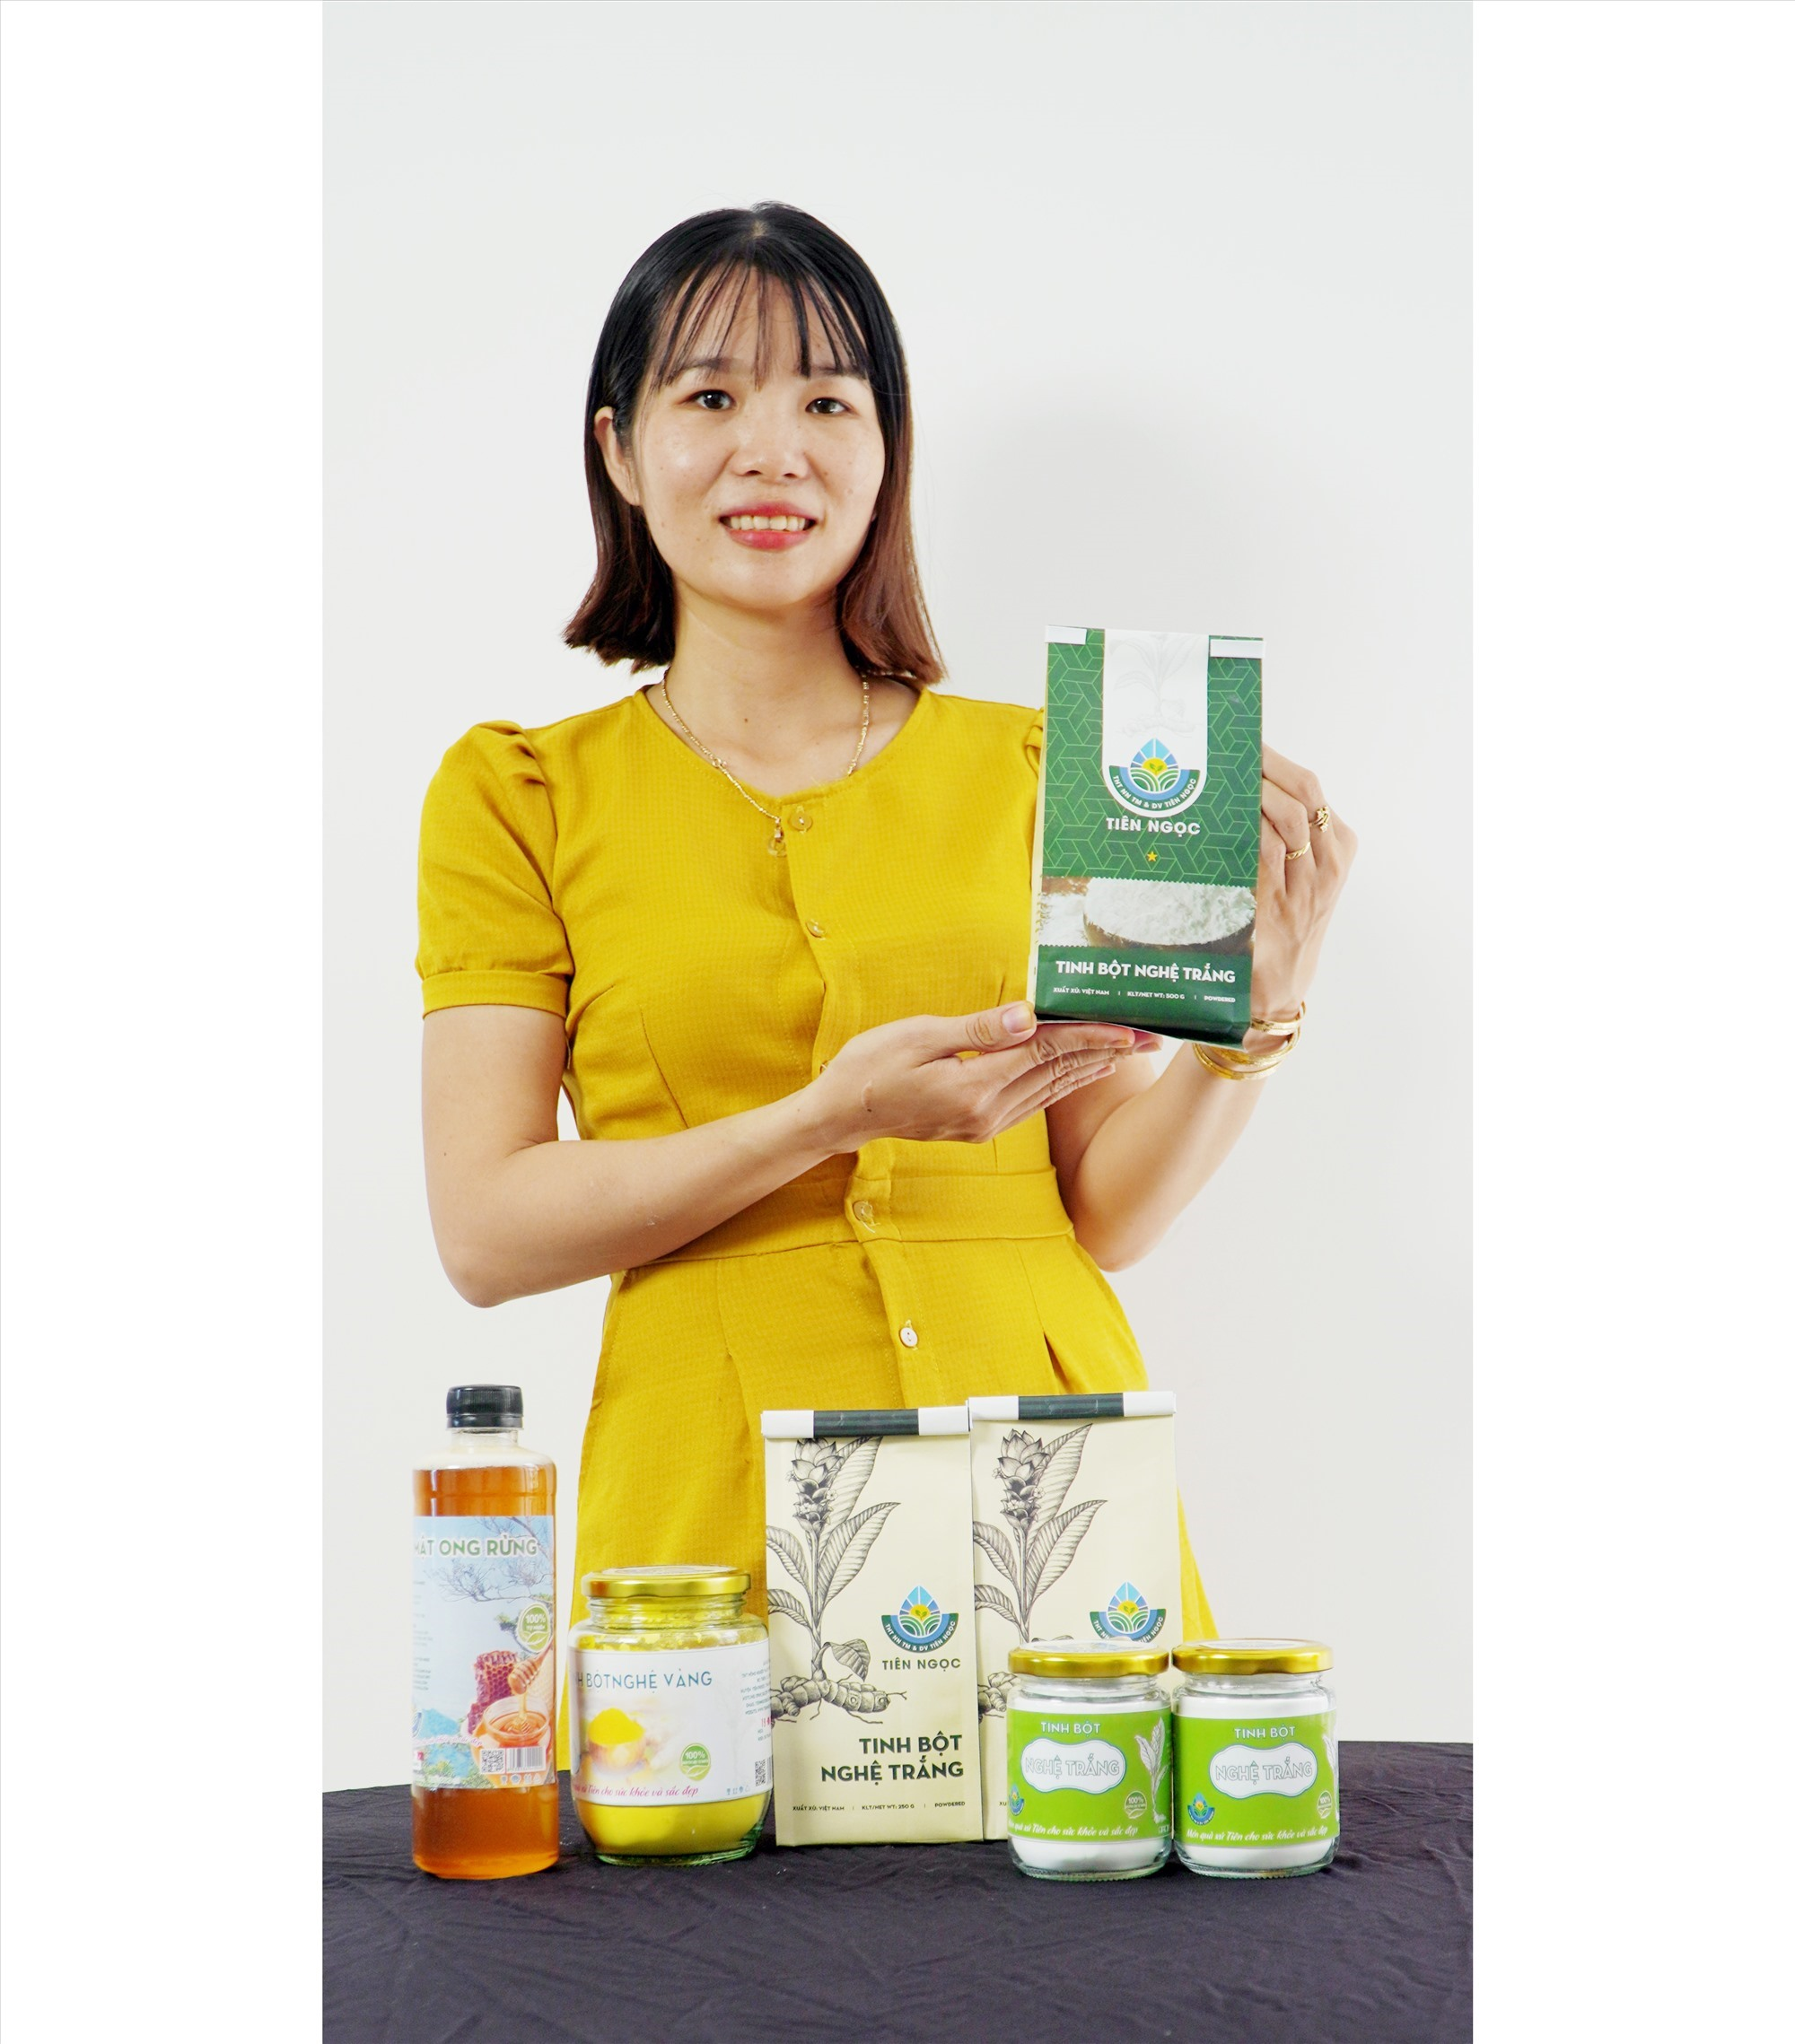 Pham Thi My Nuong and her products